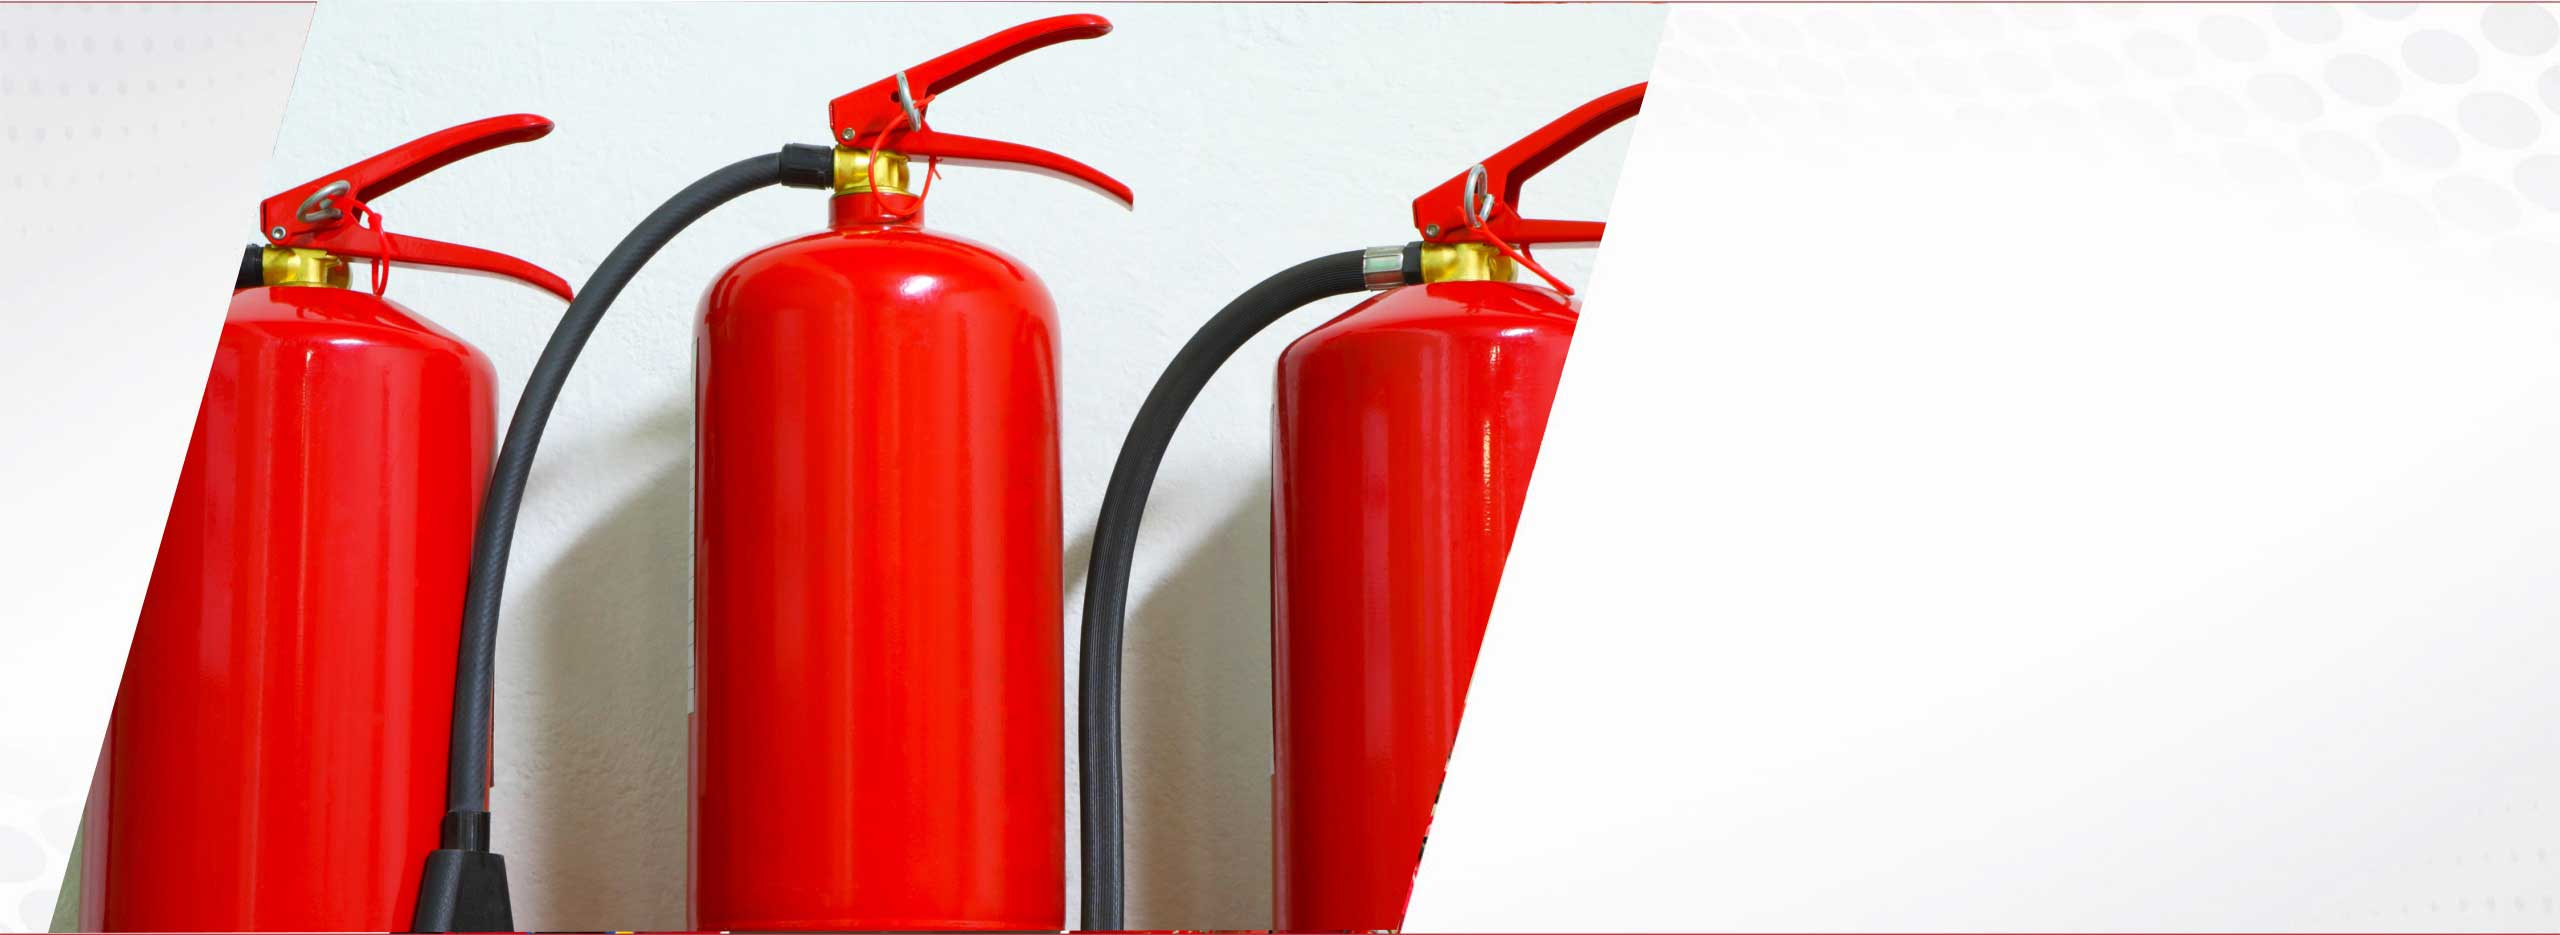 Fire Fighting & Safety Equipment Suppliers Dubai UAE | Fire